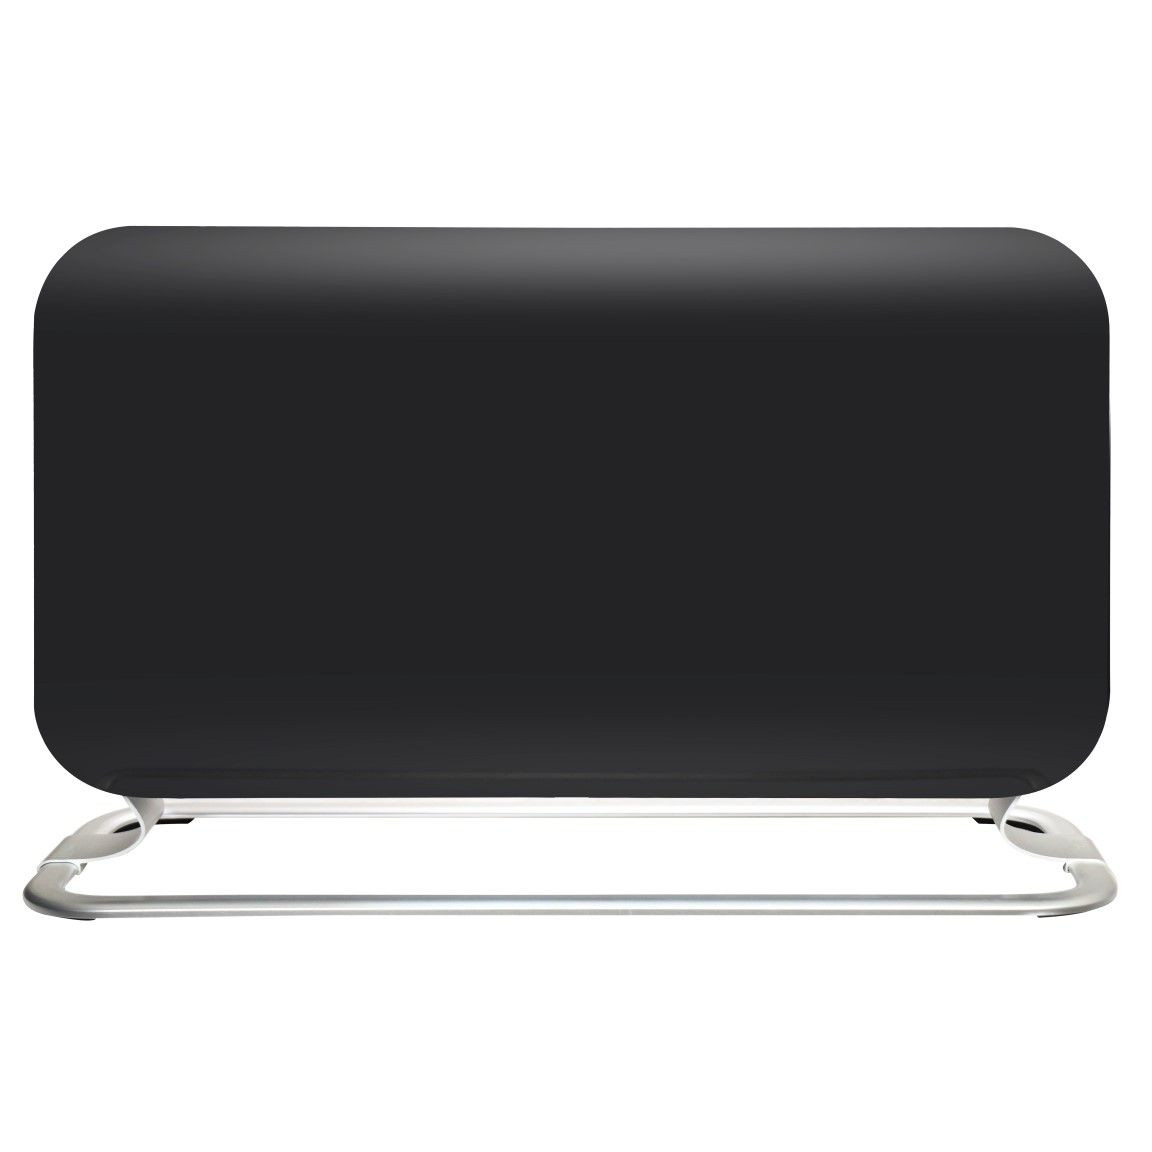 Convection Heater 2000W + LED   Black